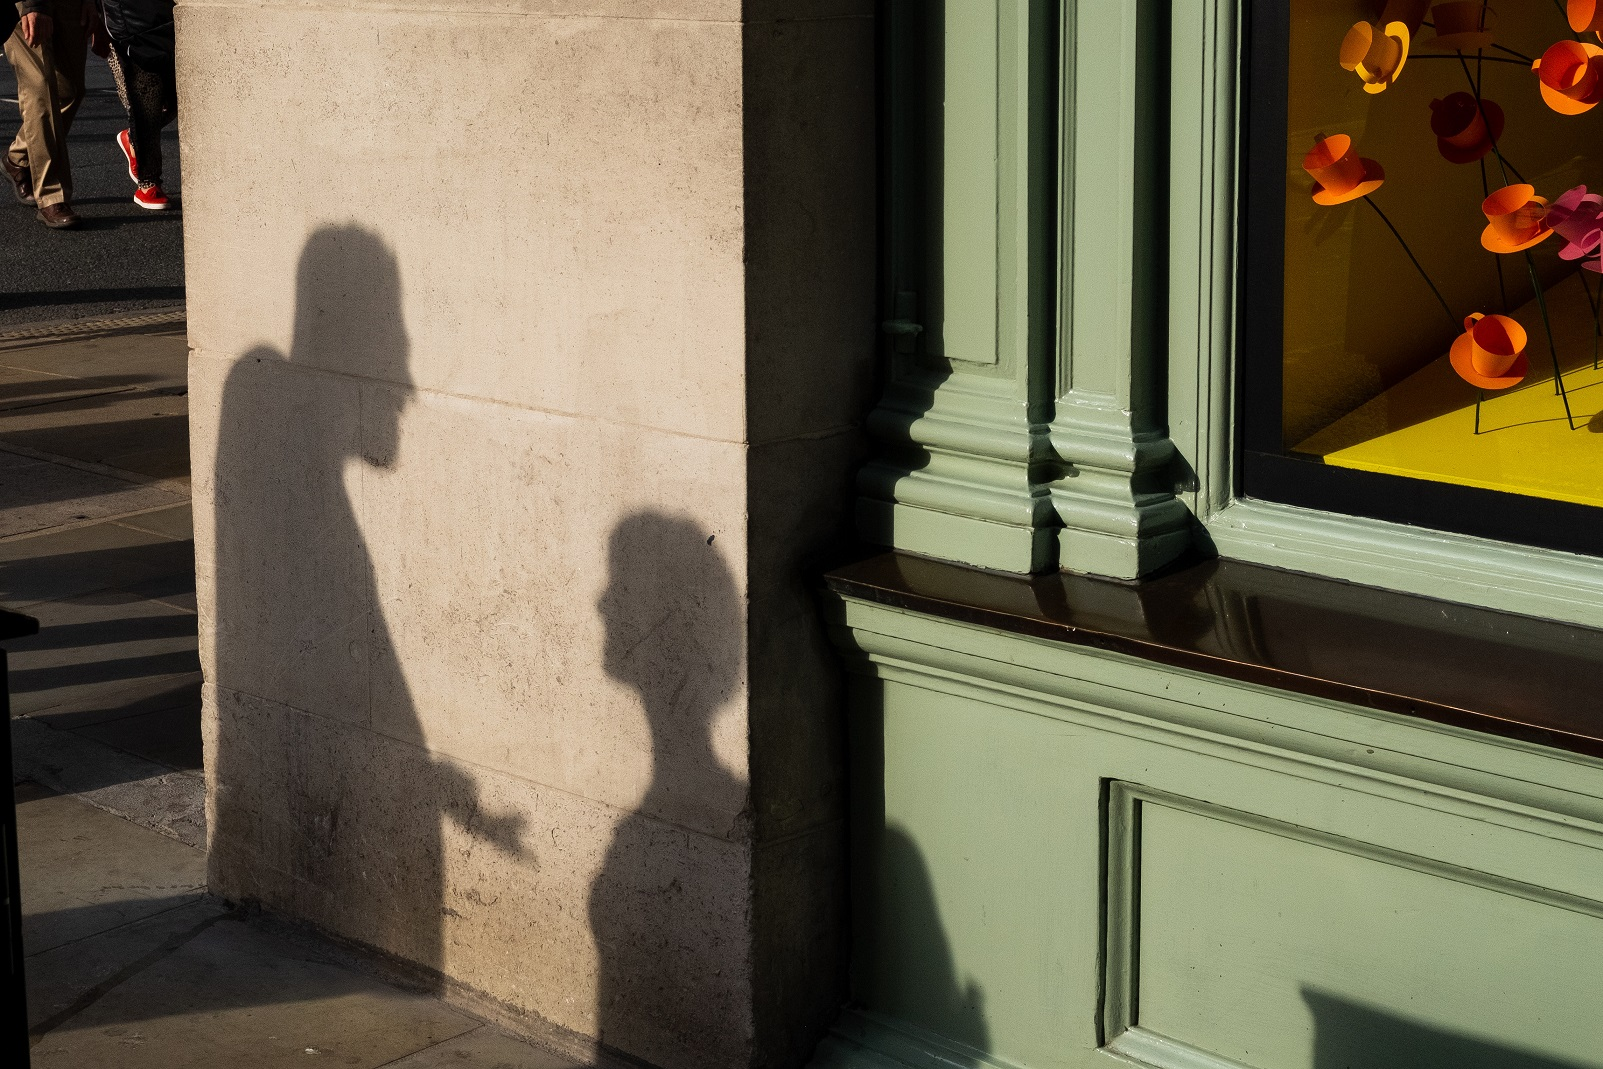 Two people talking in the shadows